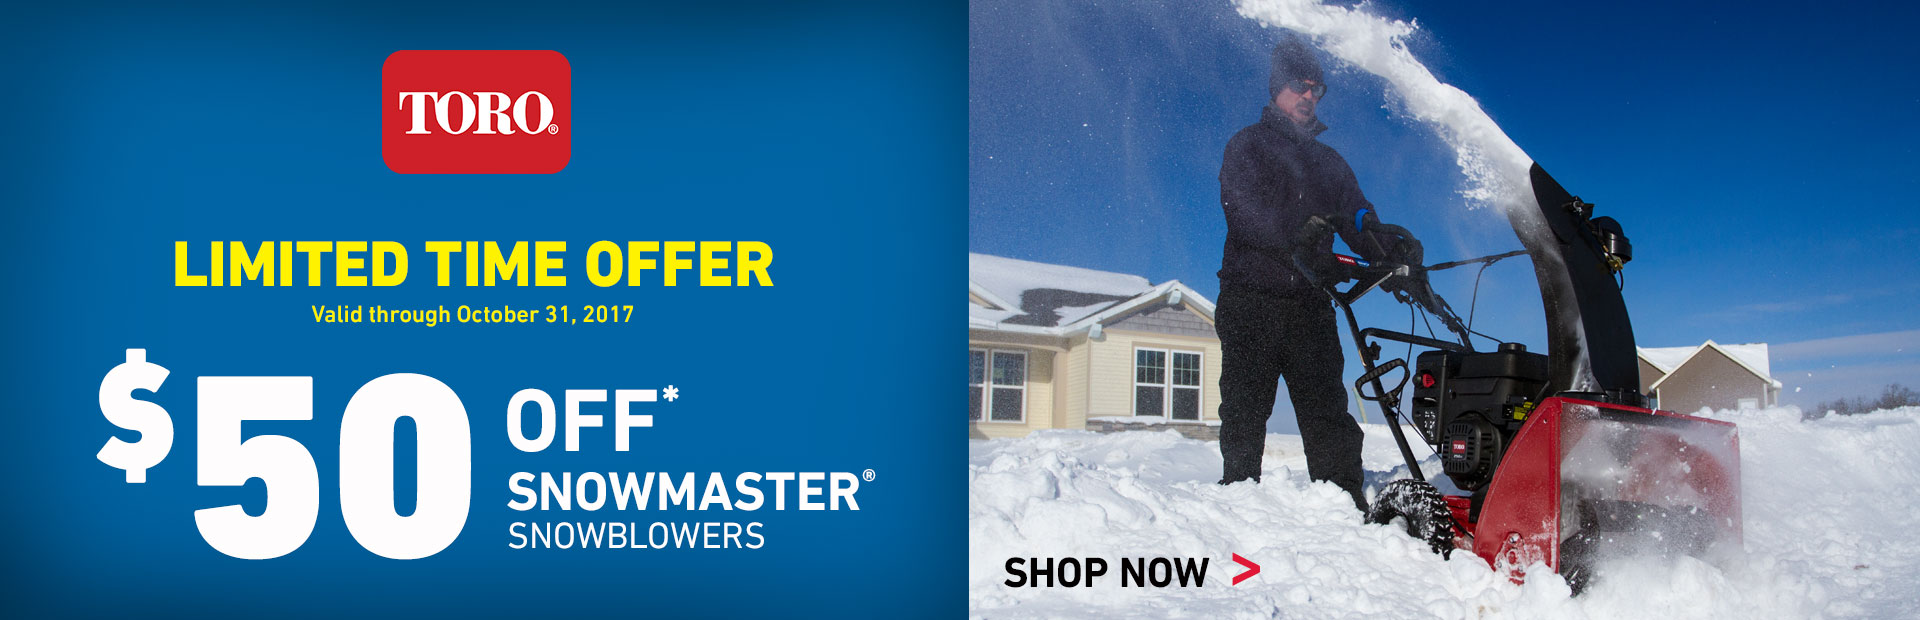 Toro: $50 Off Snowmaster Snowblowers